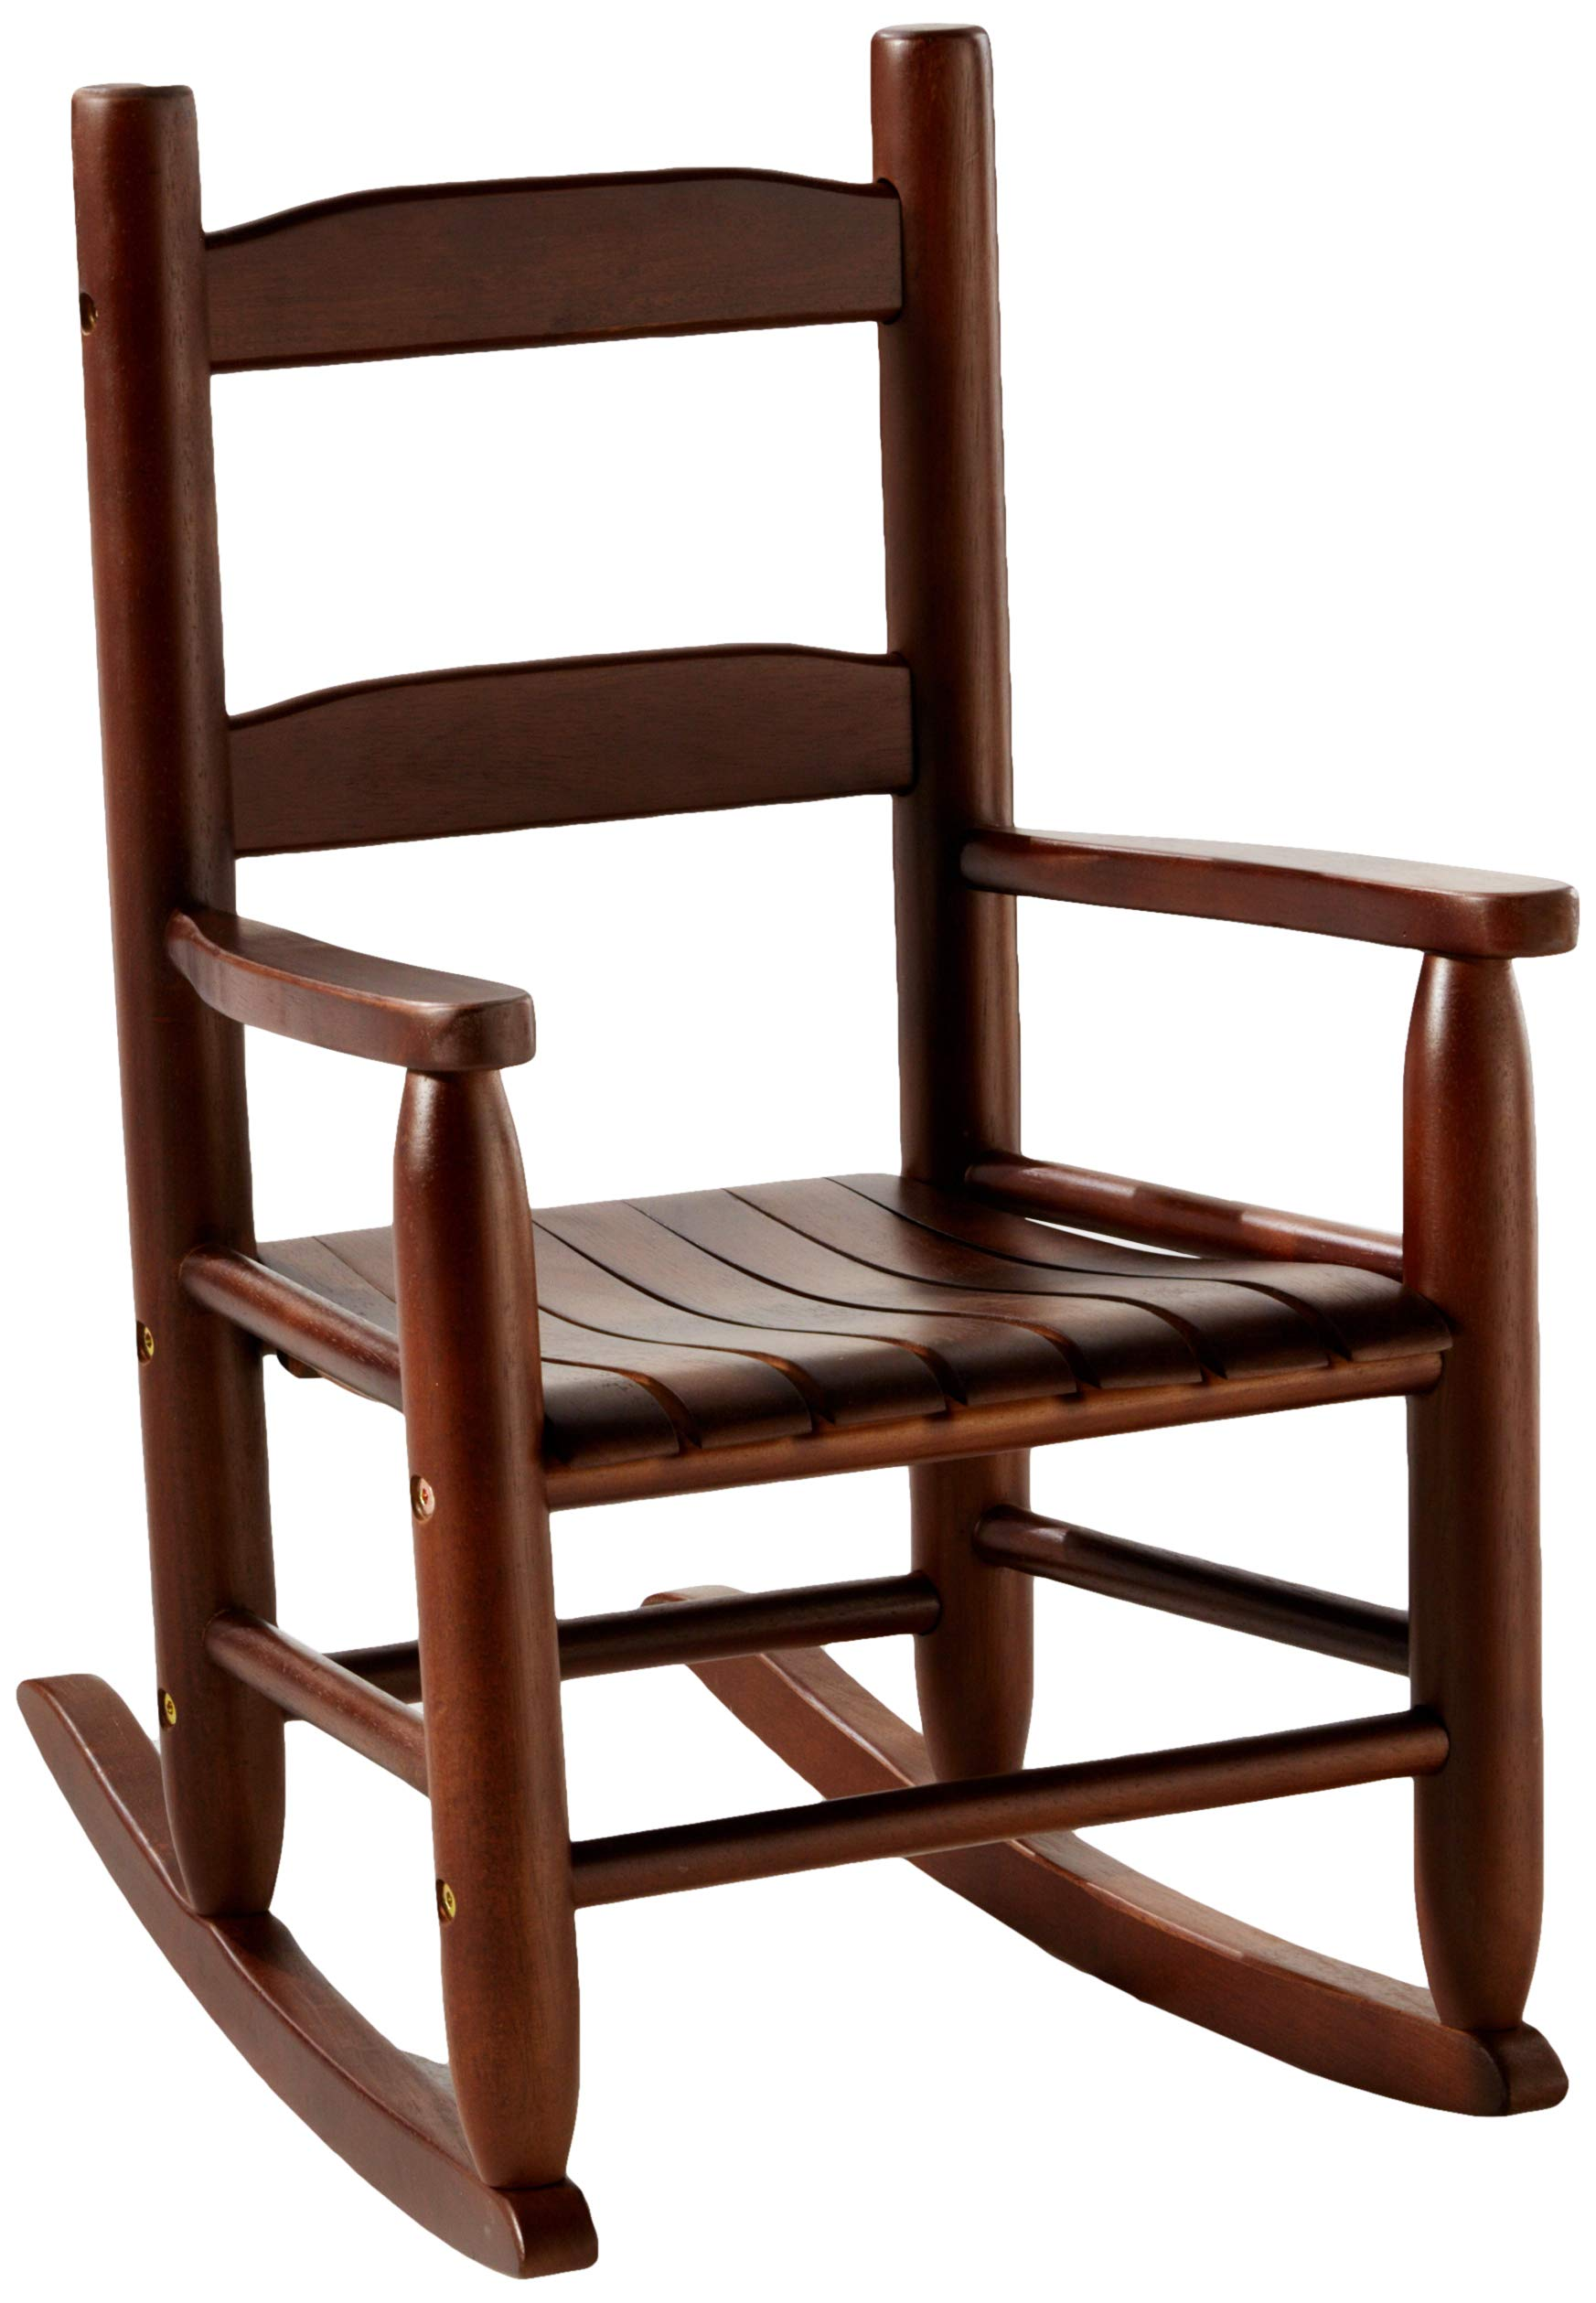 Lipper International Child's Rocking Chair, 14.5'' W x 19.75'' D x 23.75'' H, Walnut Finish by Lipper International